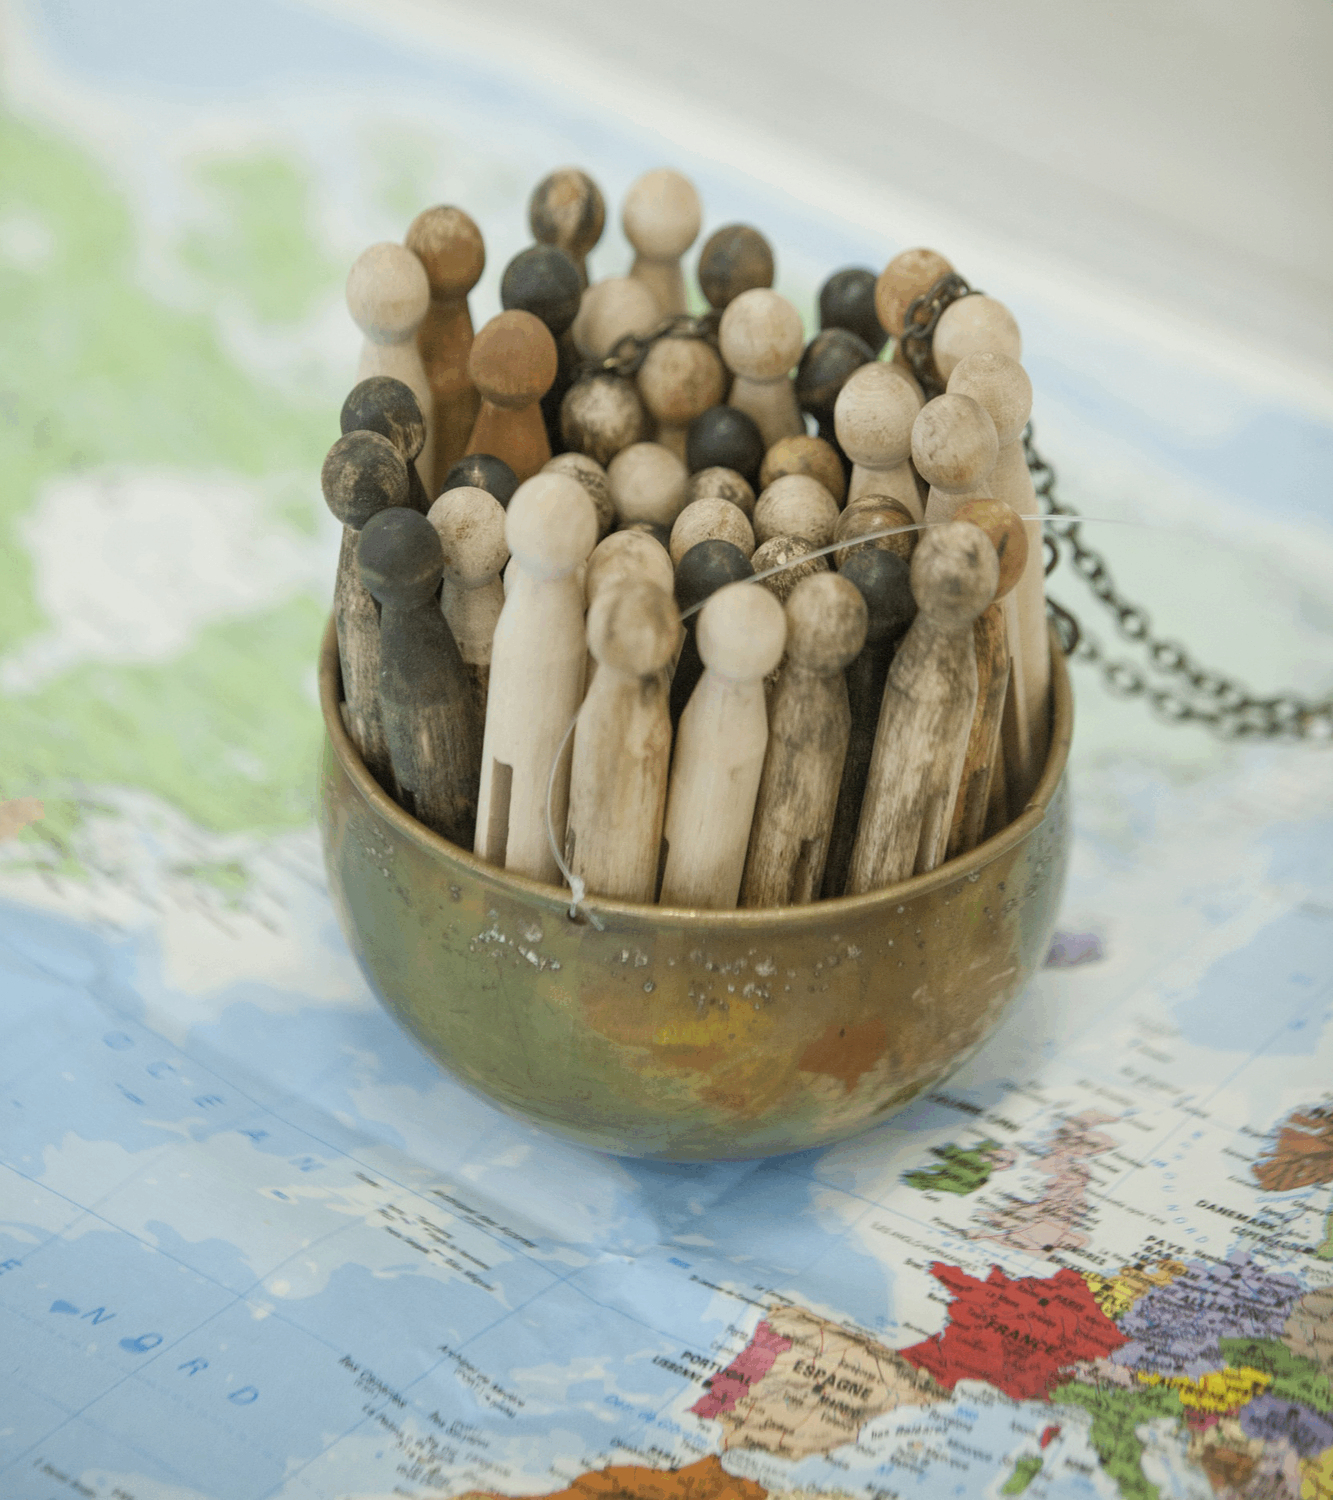 different coloured pegs tightly packed in a metal bowl sitting on a map